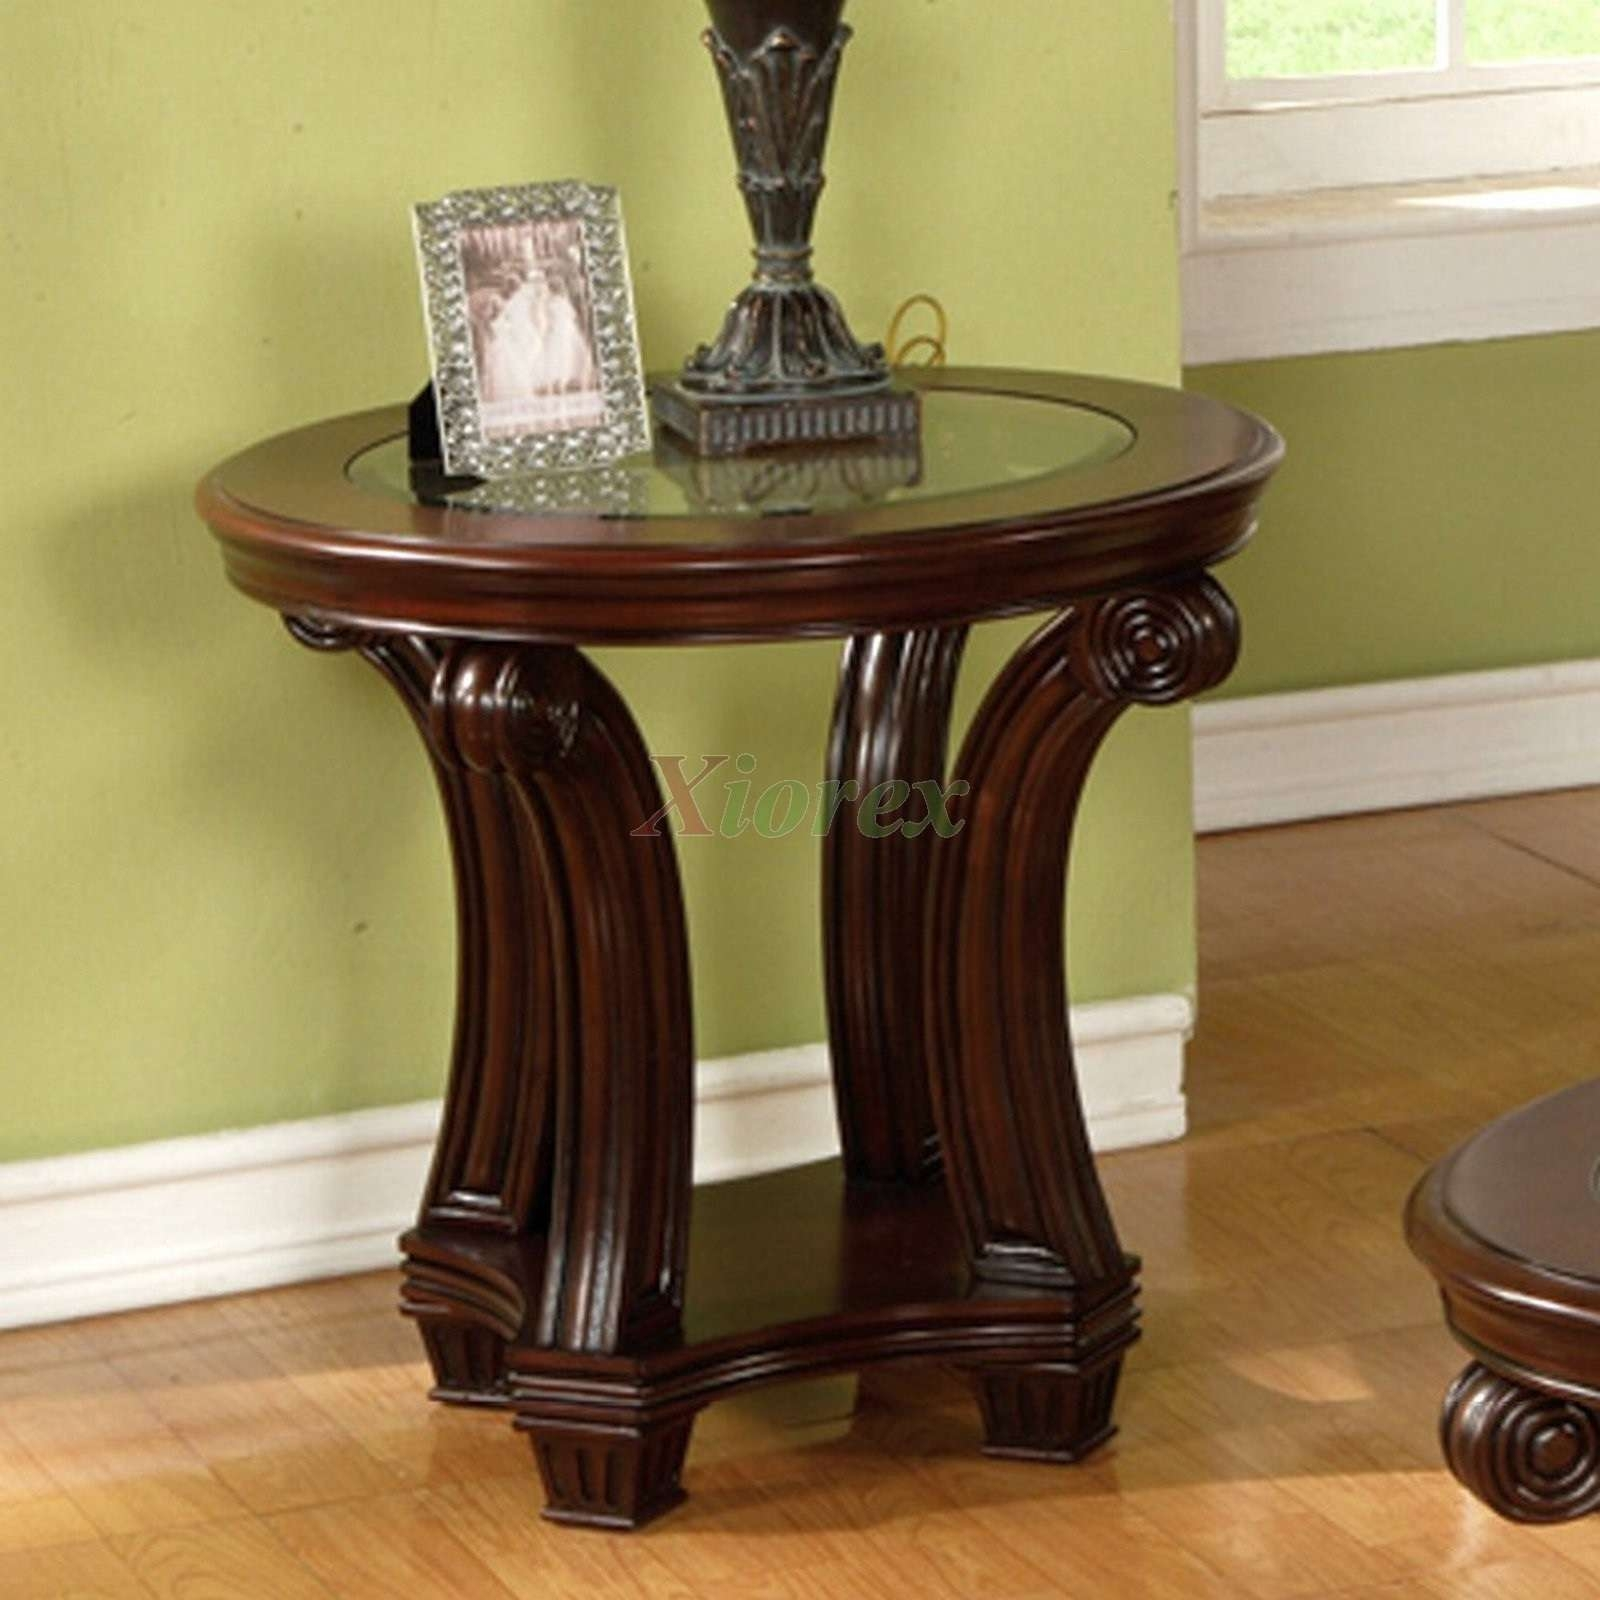 Round Coffee Tables And End Tables 10 Top Design – Round Coffee Inside Most Recent Coffee Table With Matching End Tables (View 15 of 20)